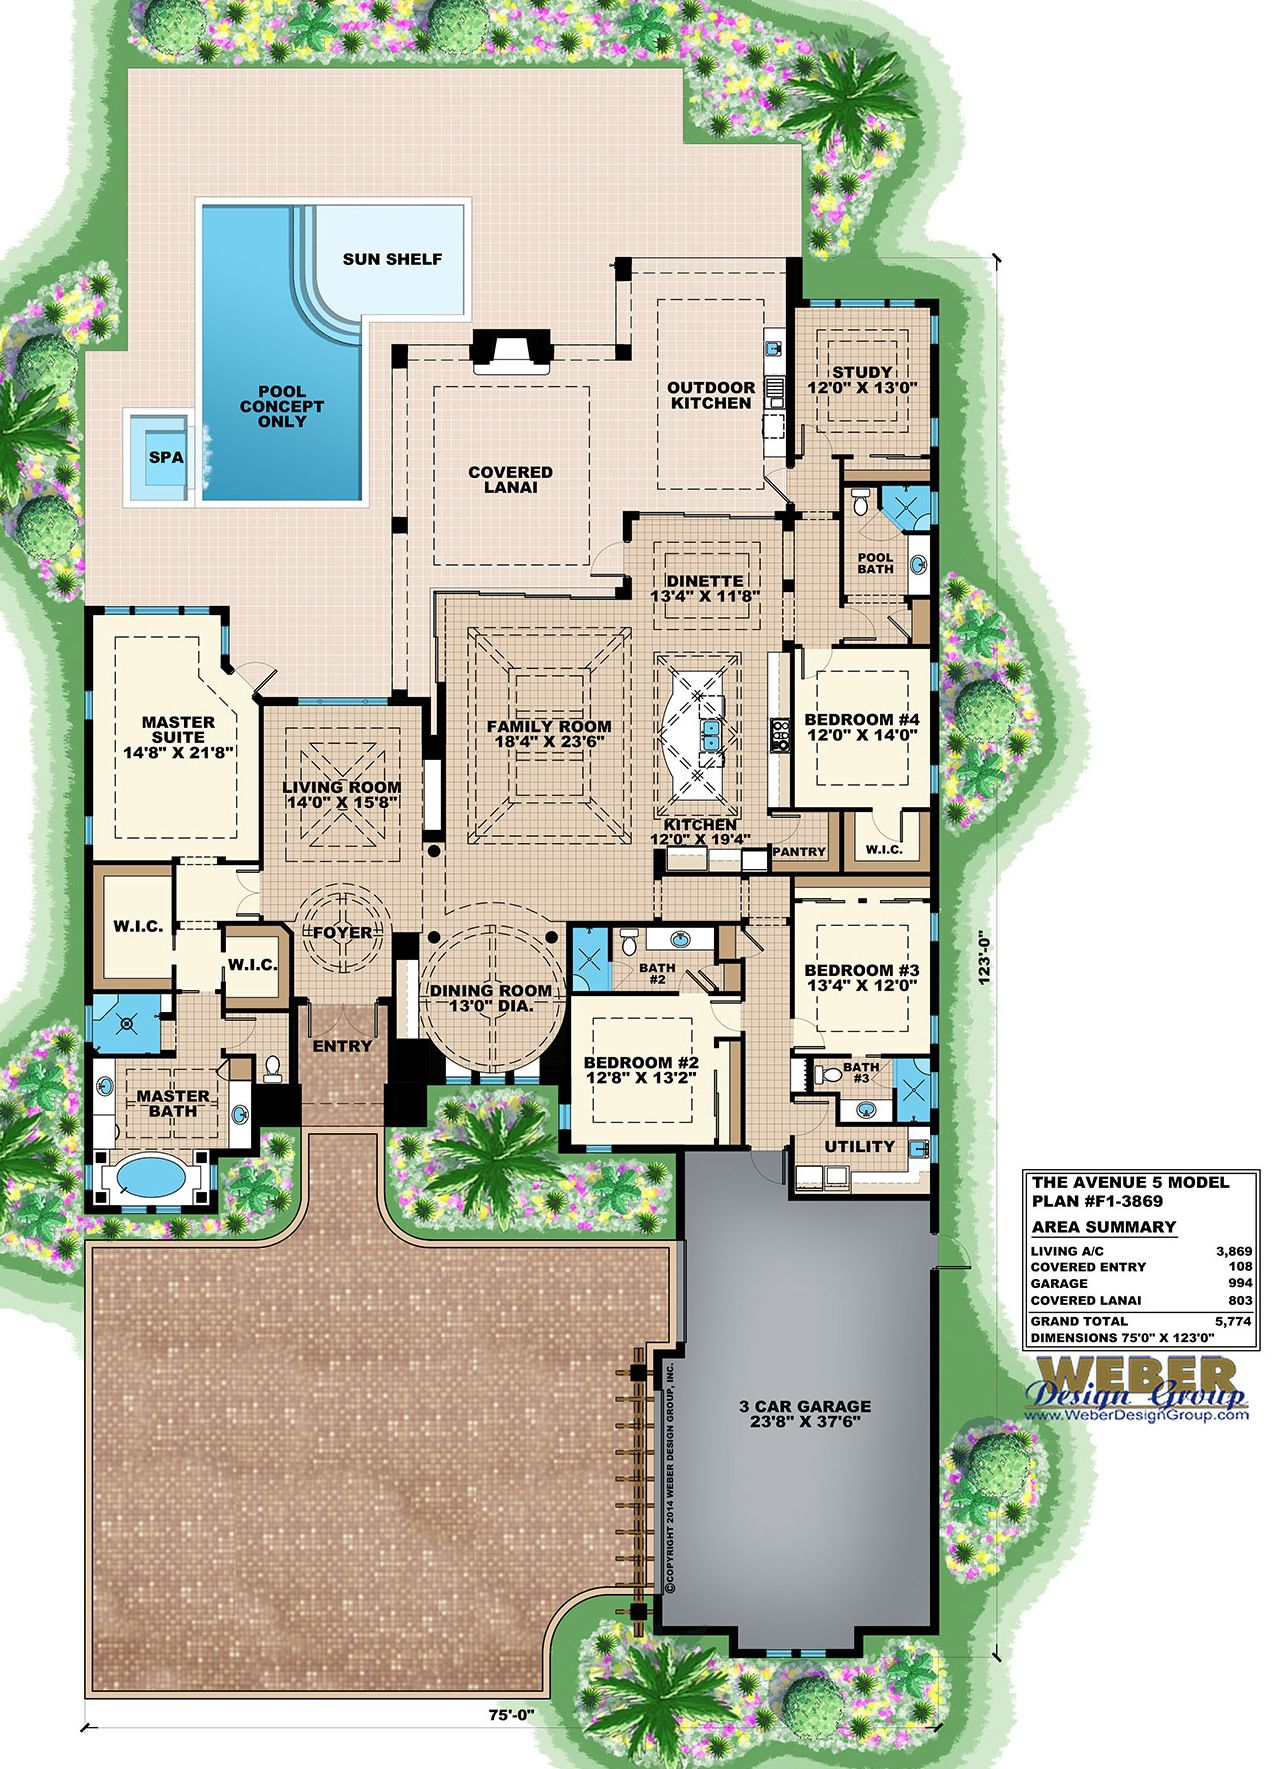 Beach House Plan 1 Story Coastal Contemporary Home Floor Plan Beach House Plans House Floor Plans House Plans